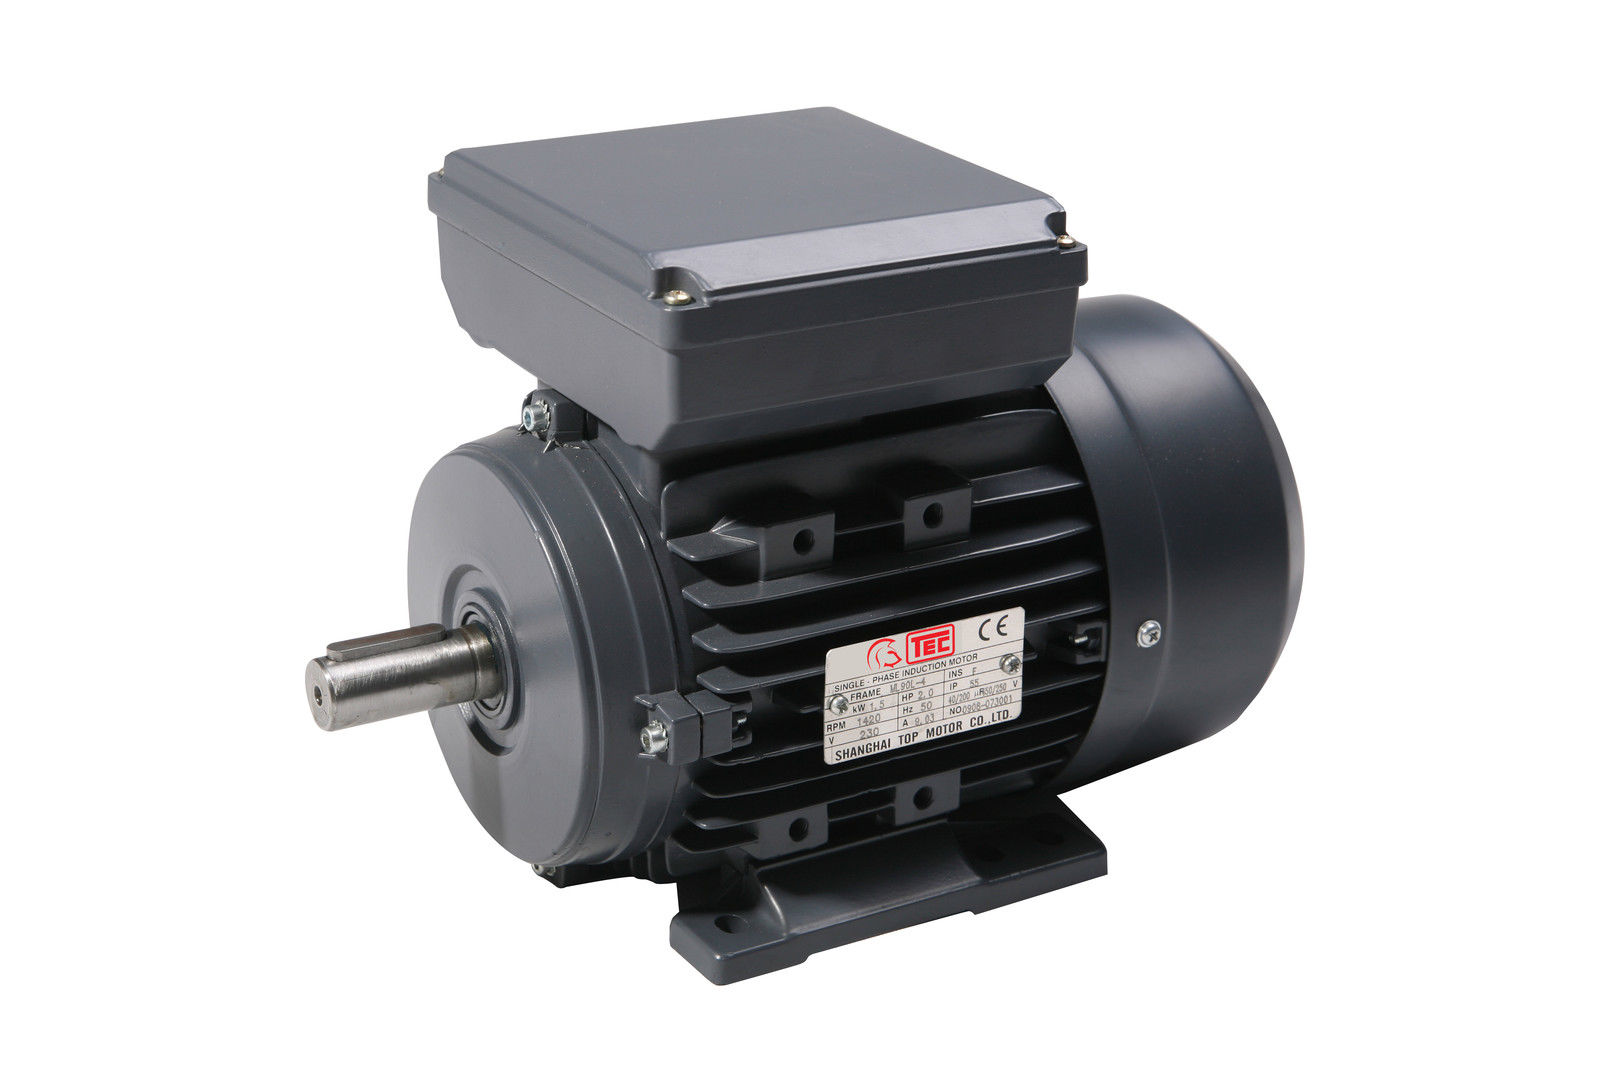 3 0 kw 4 hp single phase electric motor 240v 2800 rpm 3kw